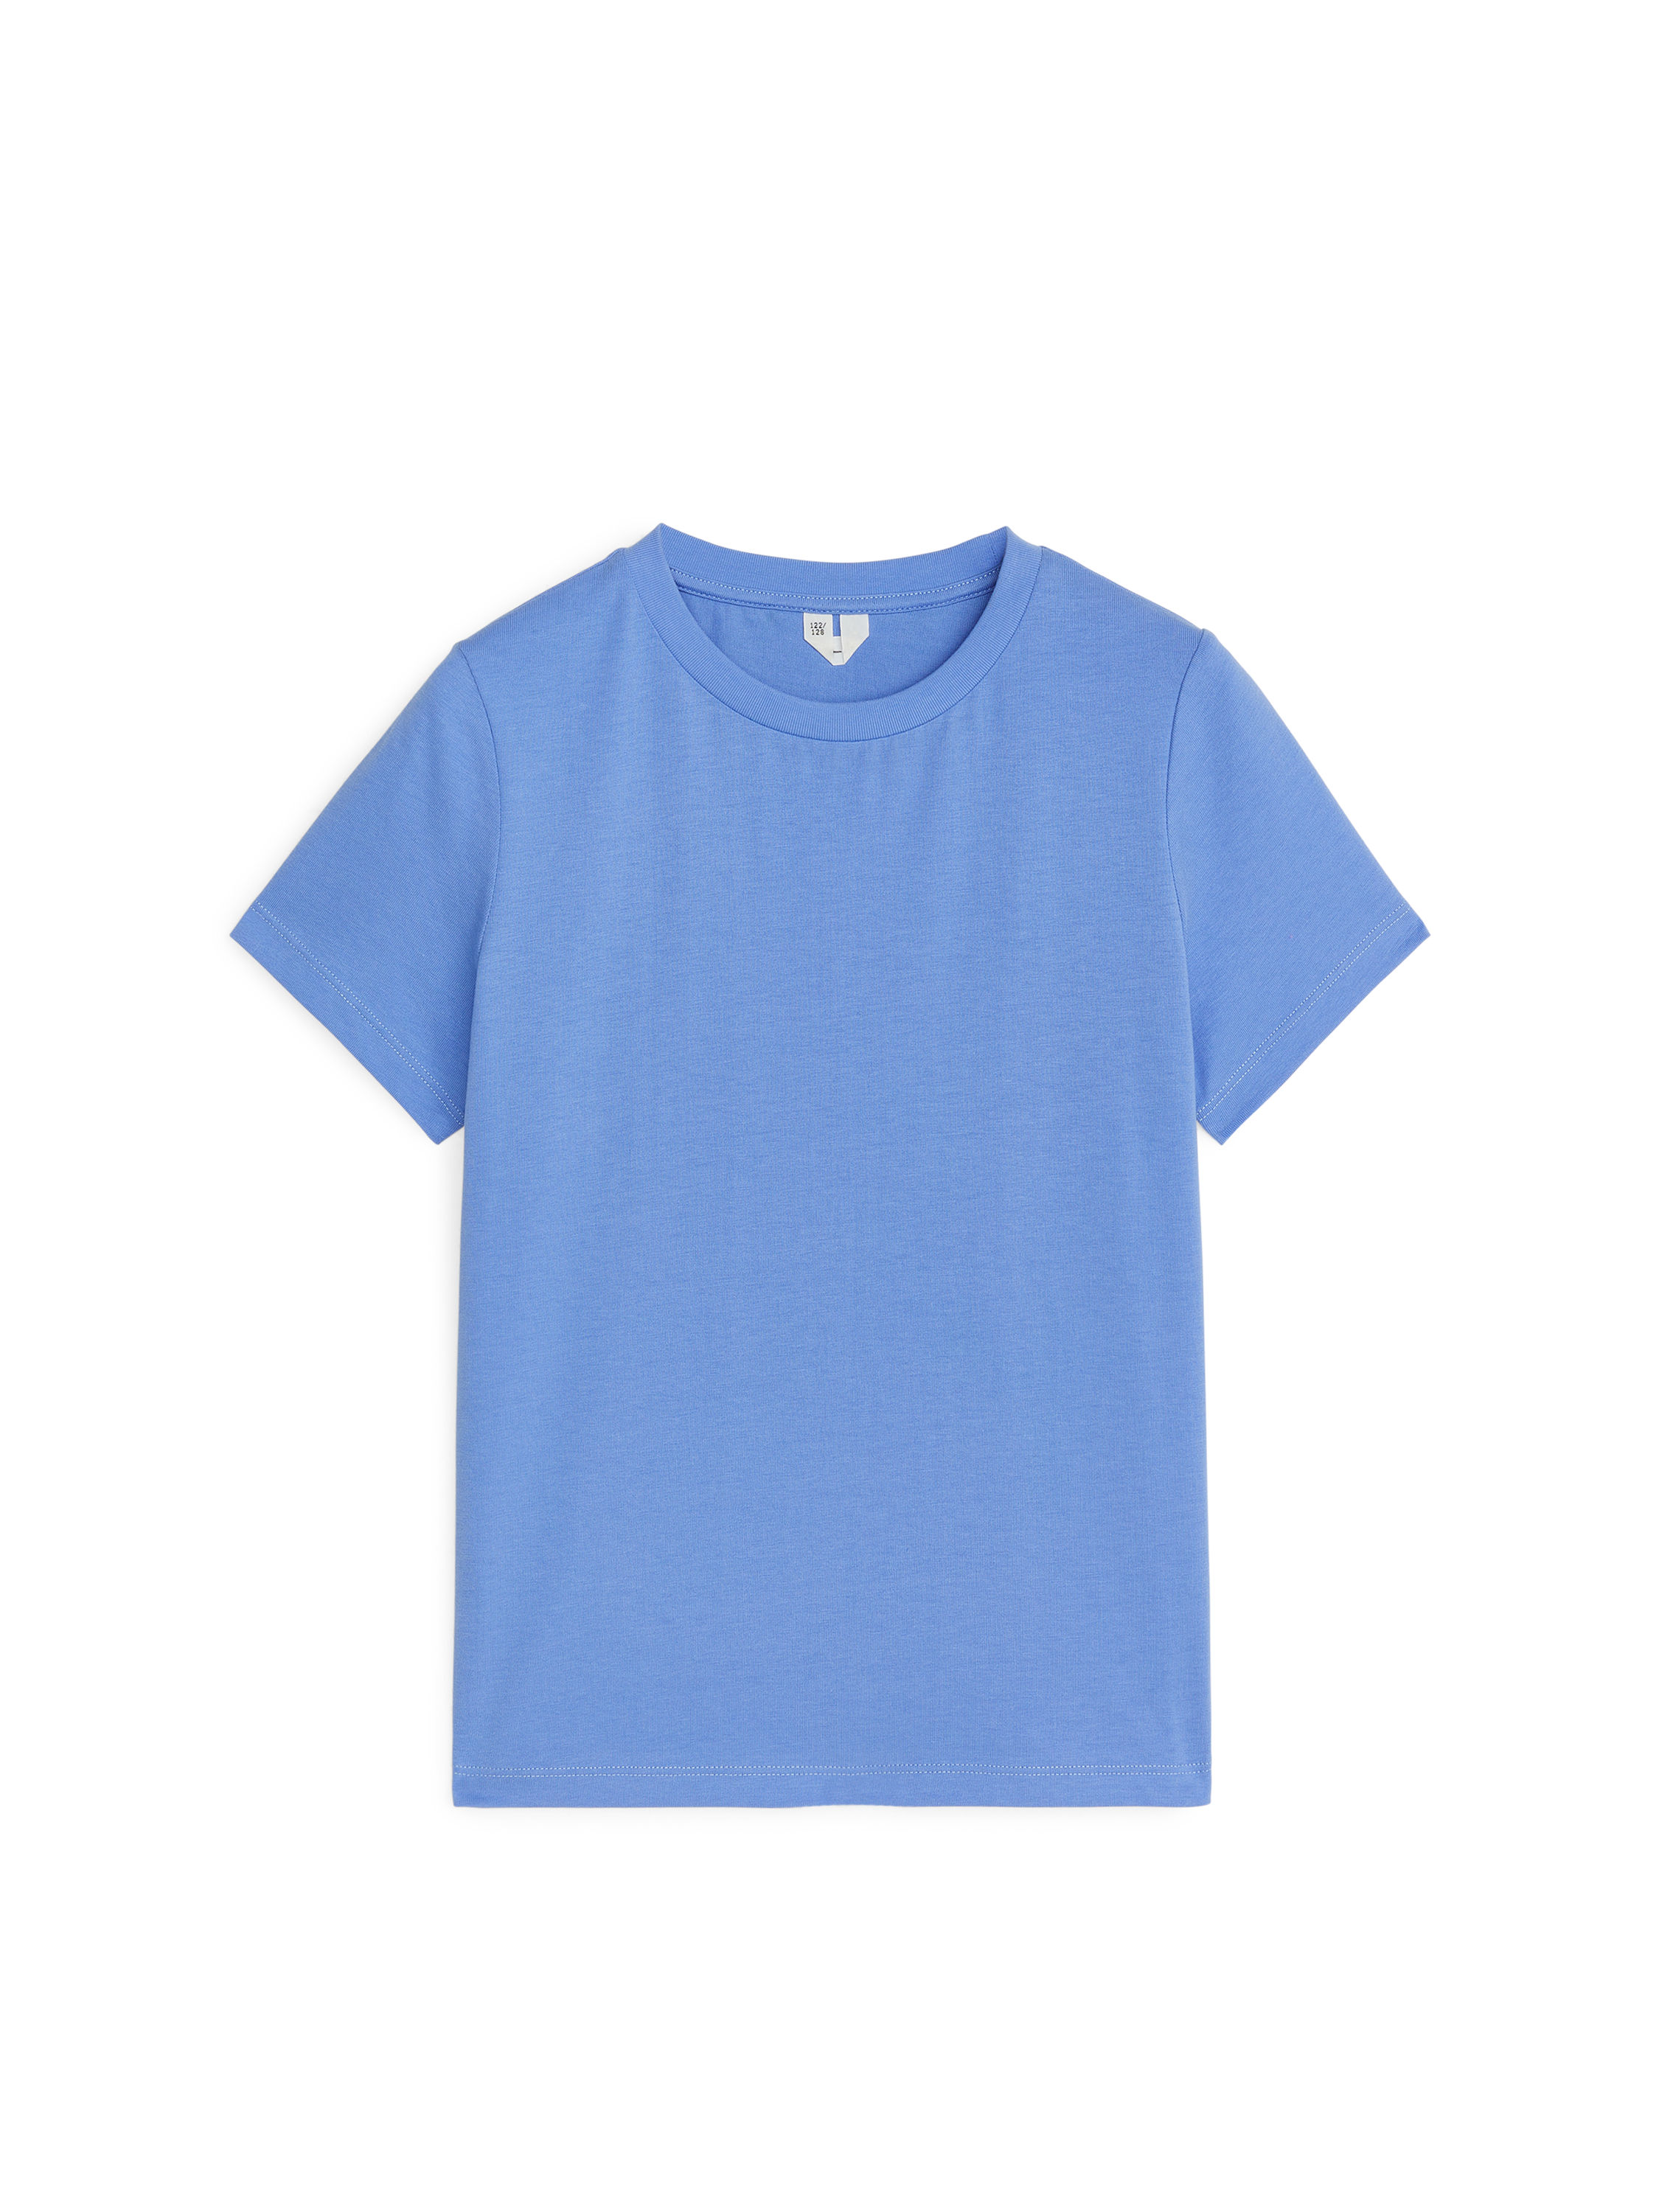 Fabric Swatch image of Arket crew-neck t-shirt in blue